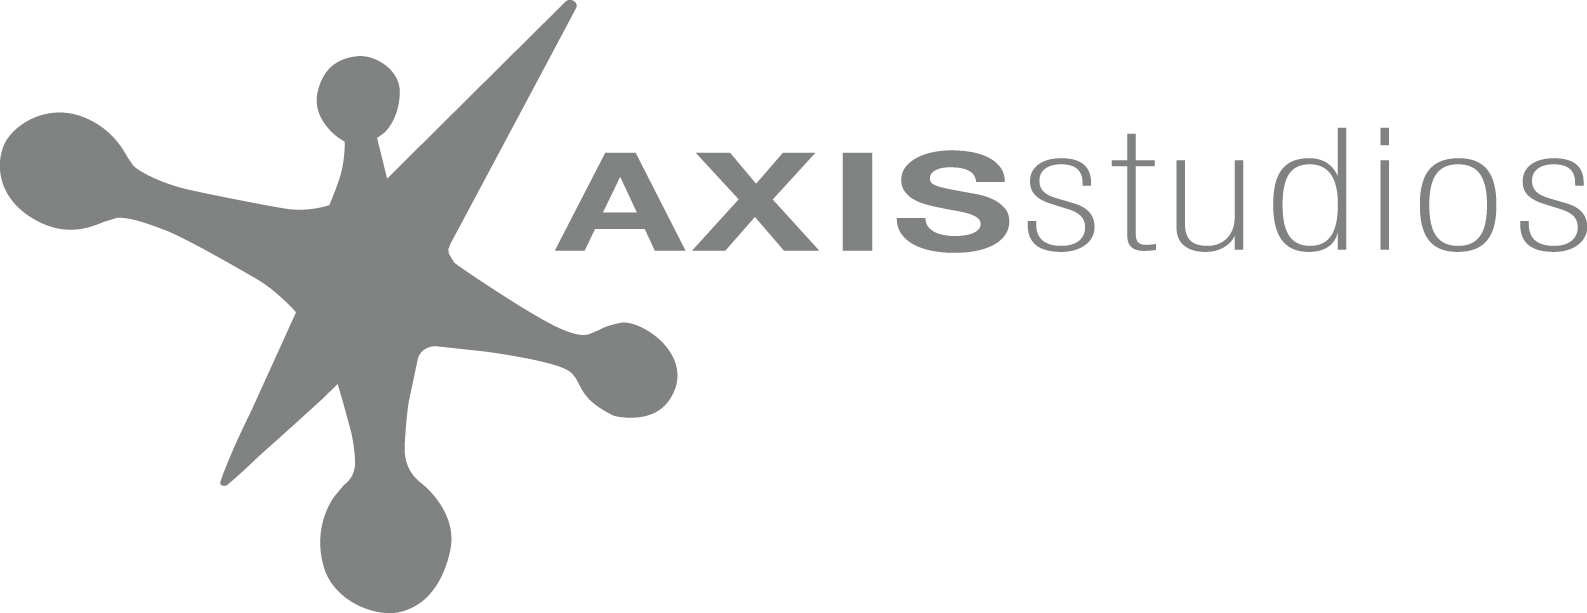 http://www.axisanimation.com/